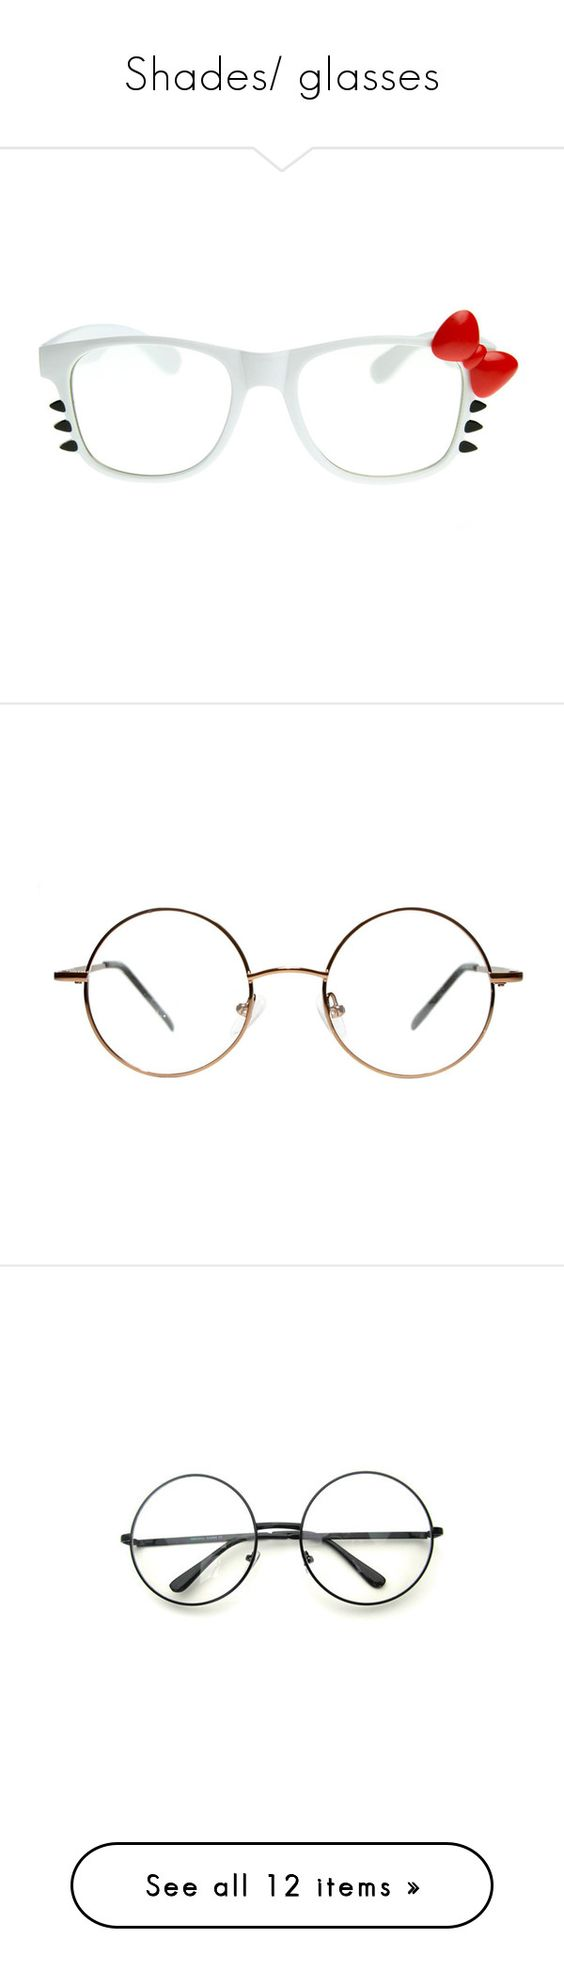 """""""Shades/ glasses"""" by pastle-bands-movies-emo ❤ liked on Polyvore featuring accessories, eyewear, eyeglasses, glasses, lens glasses, hello kitty eyeglasses, uv protection glasses, bow glasses, clear eyewear and round metal glasses"""